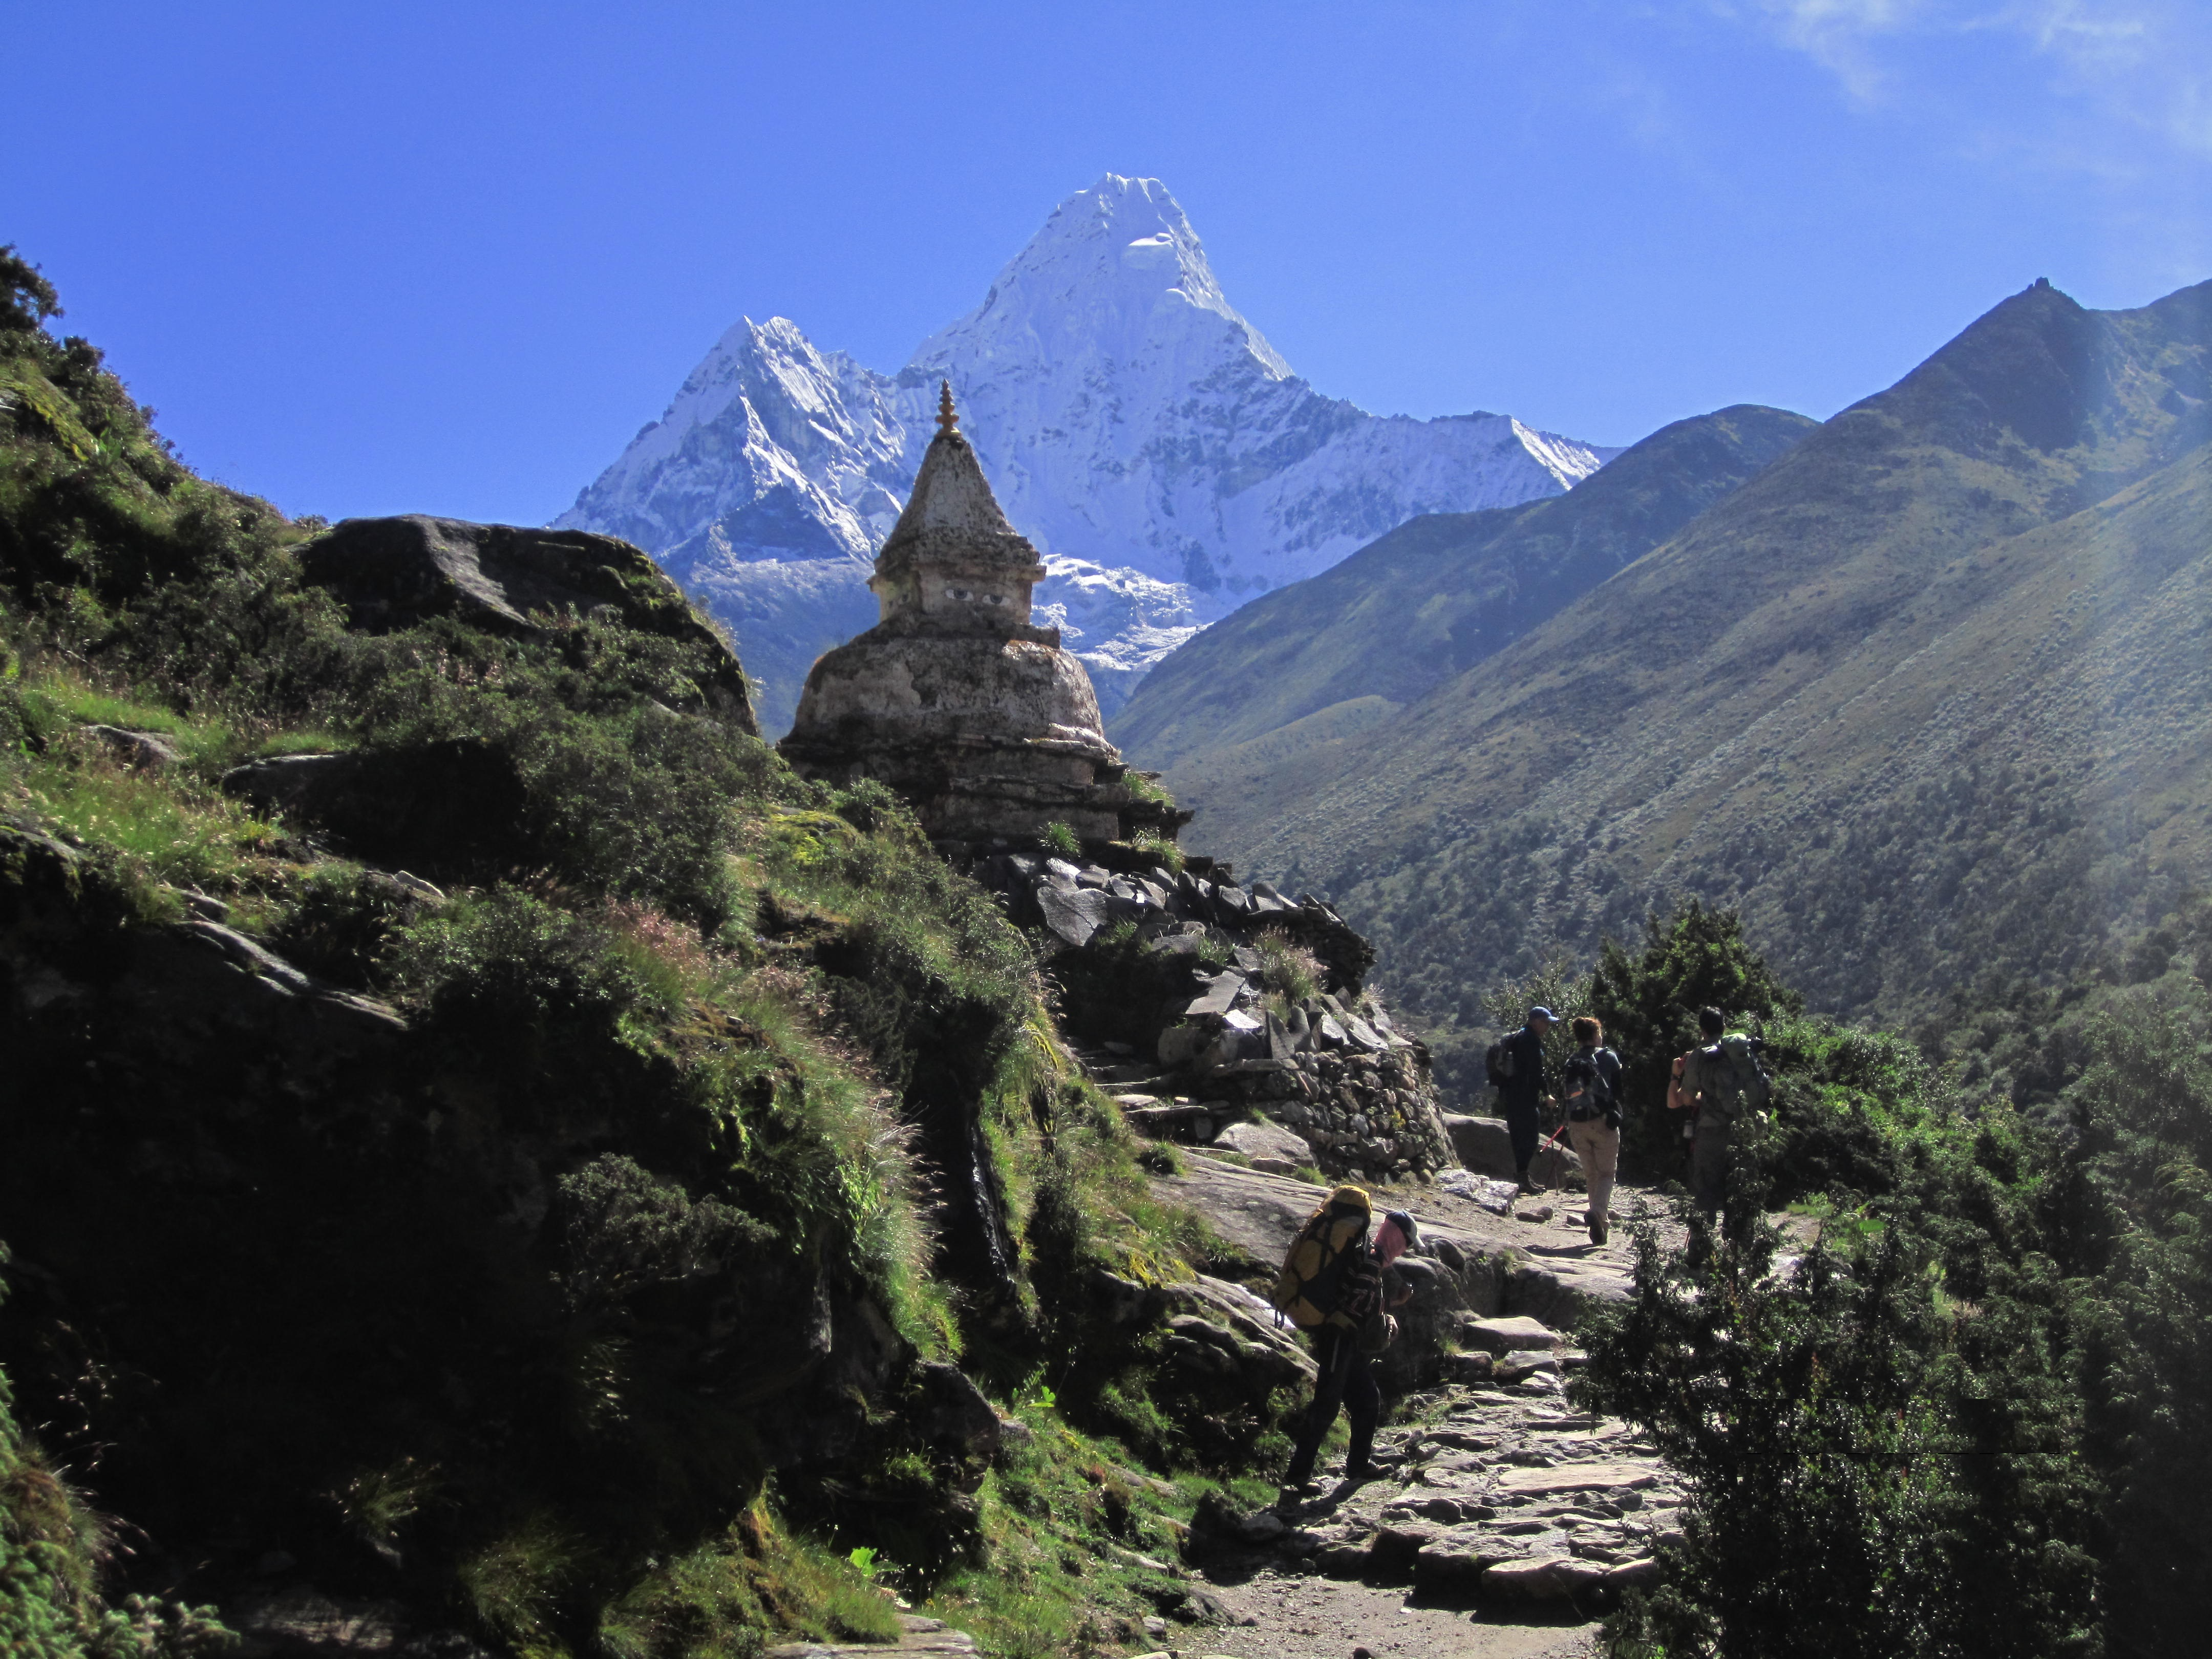 Mt. Amadablam as seen from Tengboche